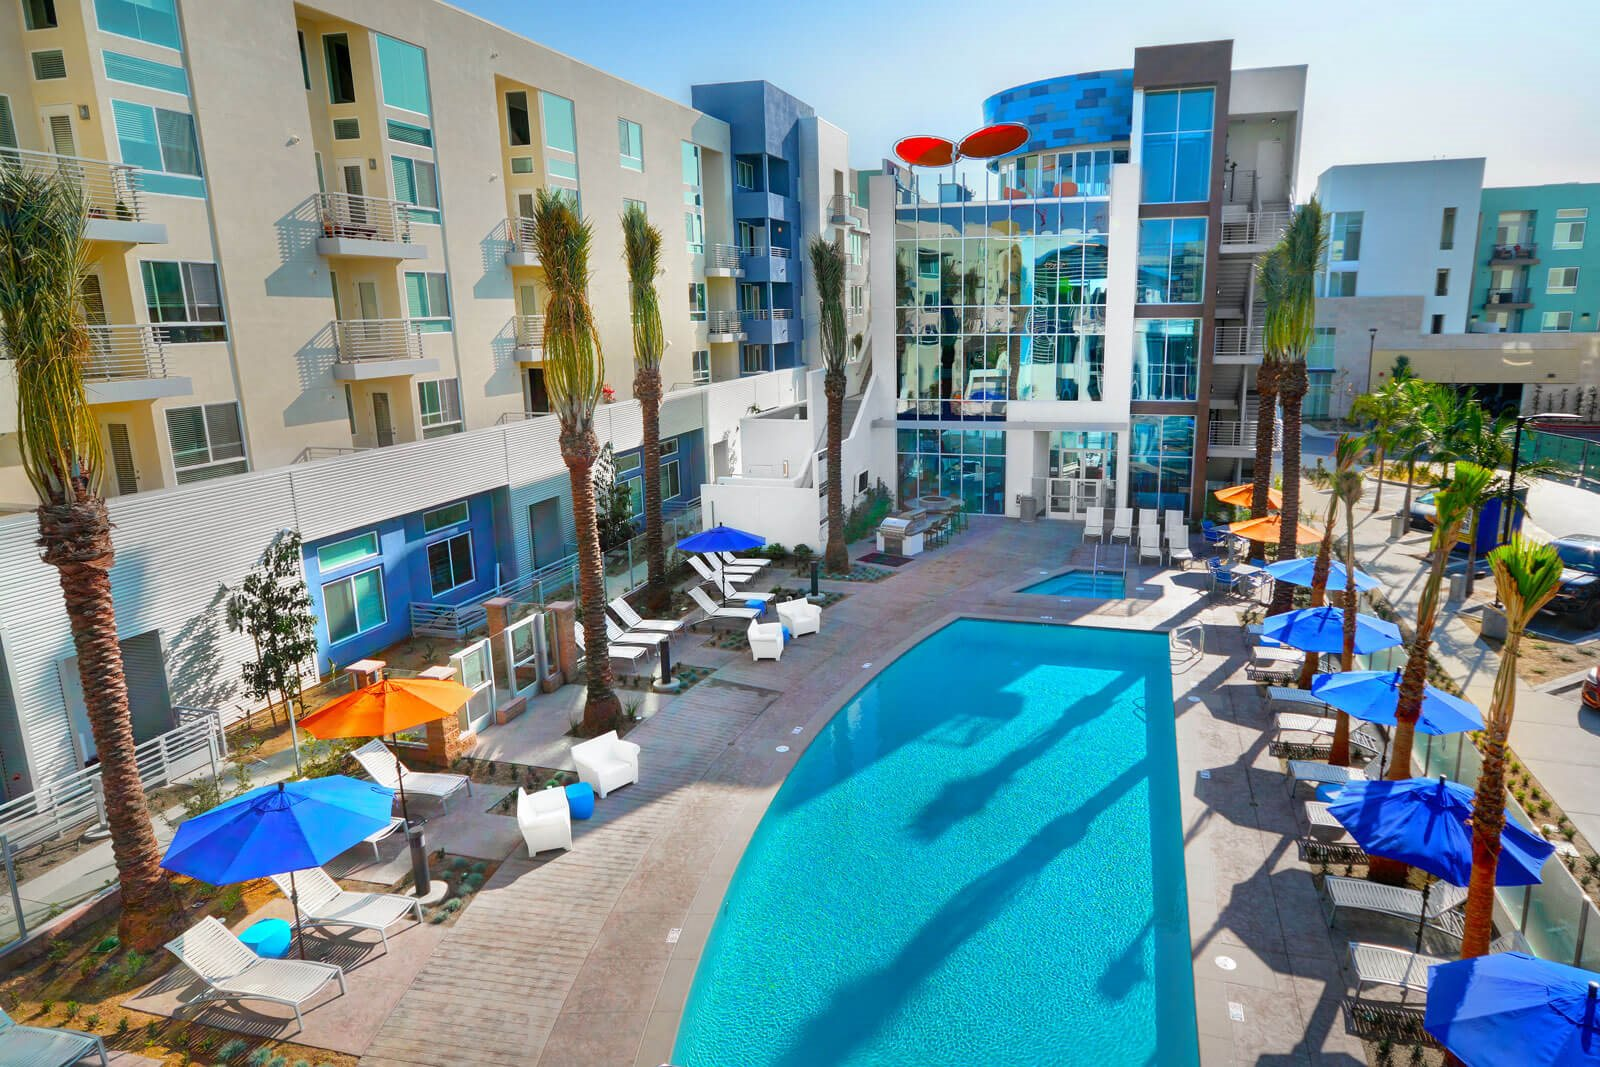 Sundeck with Lounge Chairs and Shade Umbrellas at Boardwalk by Windsor, 92647, CA